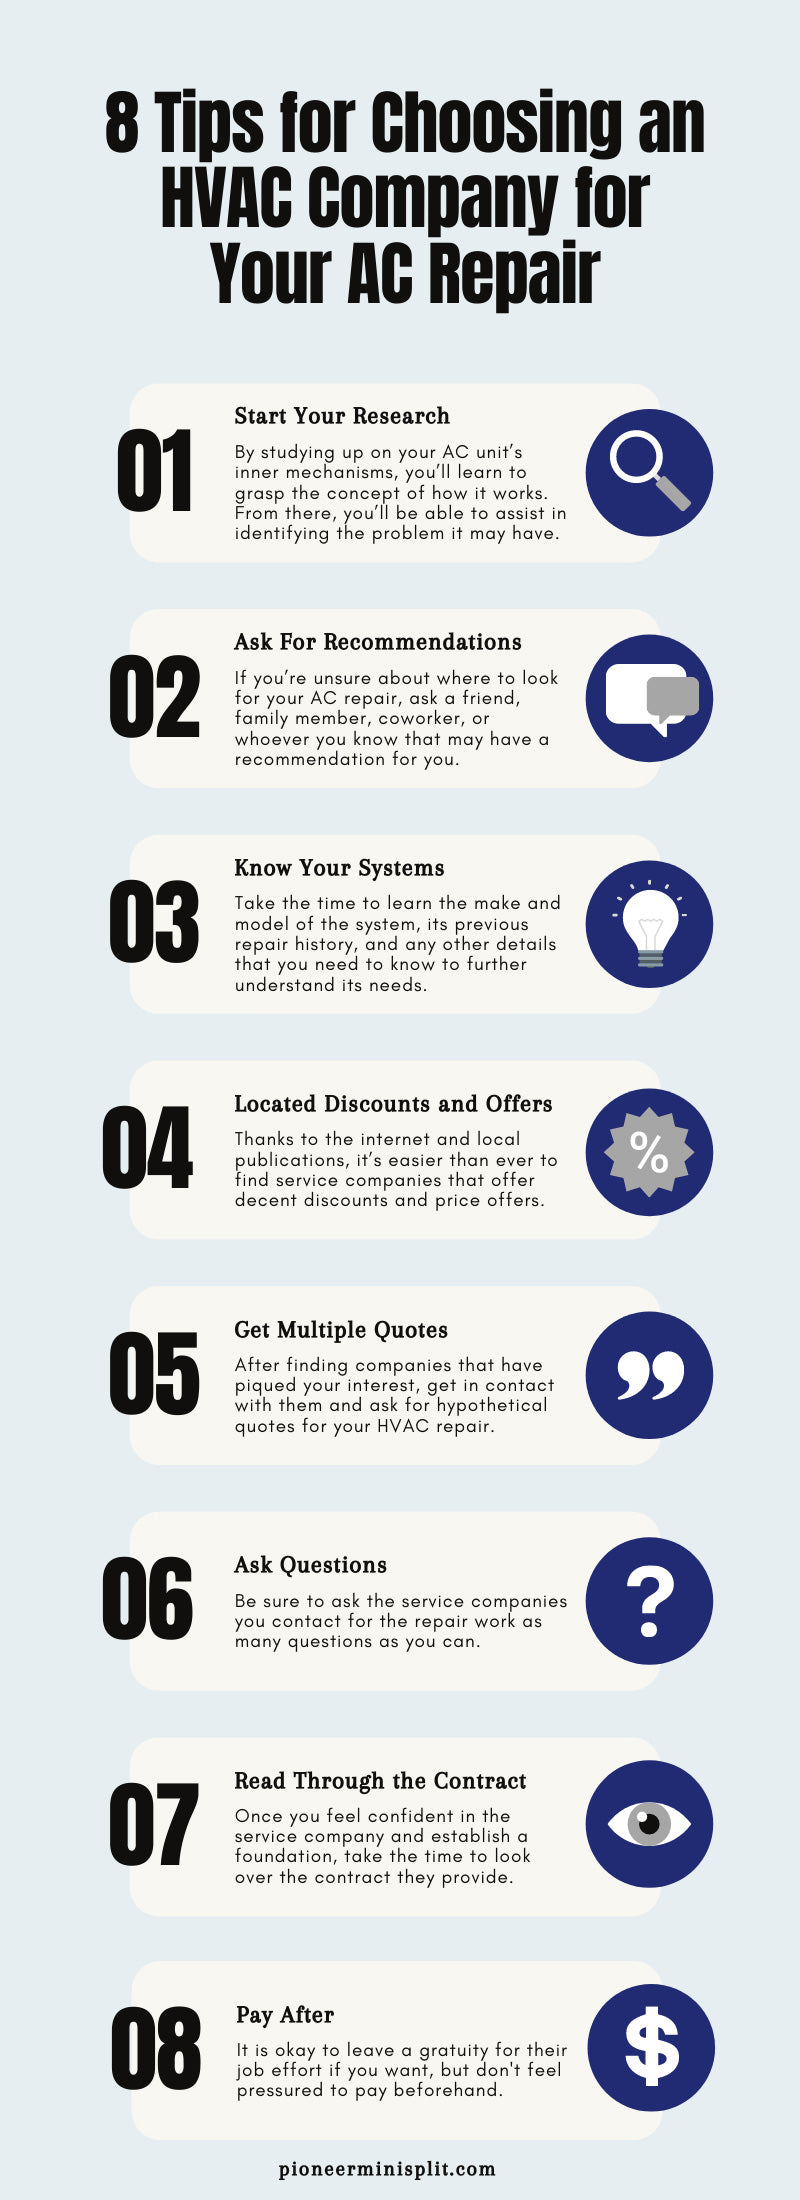 10 Tips for Choosing an HVAC Company for Your AC Repair